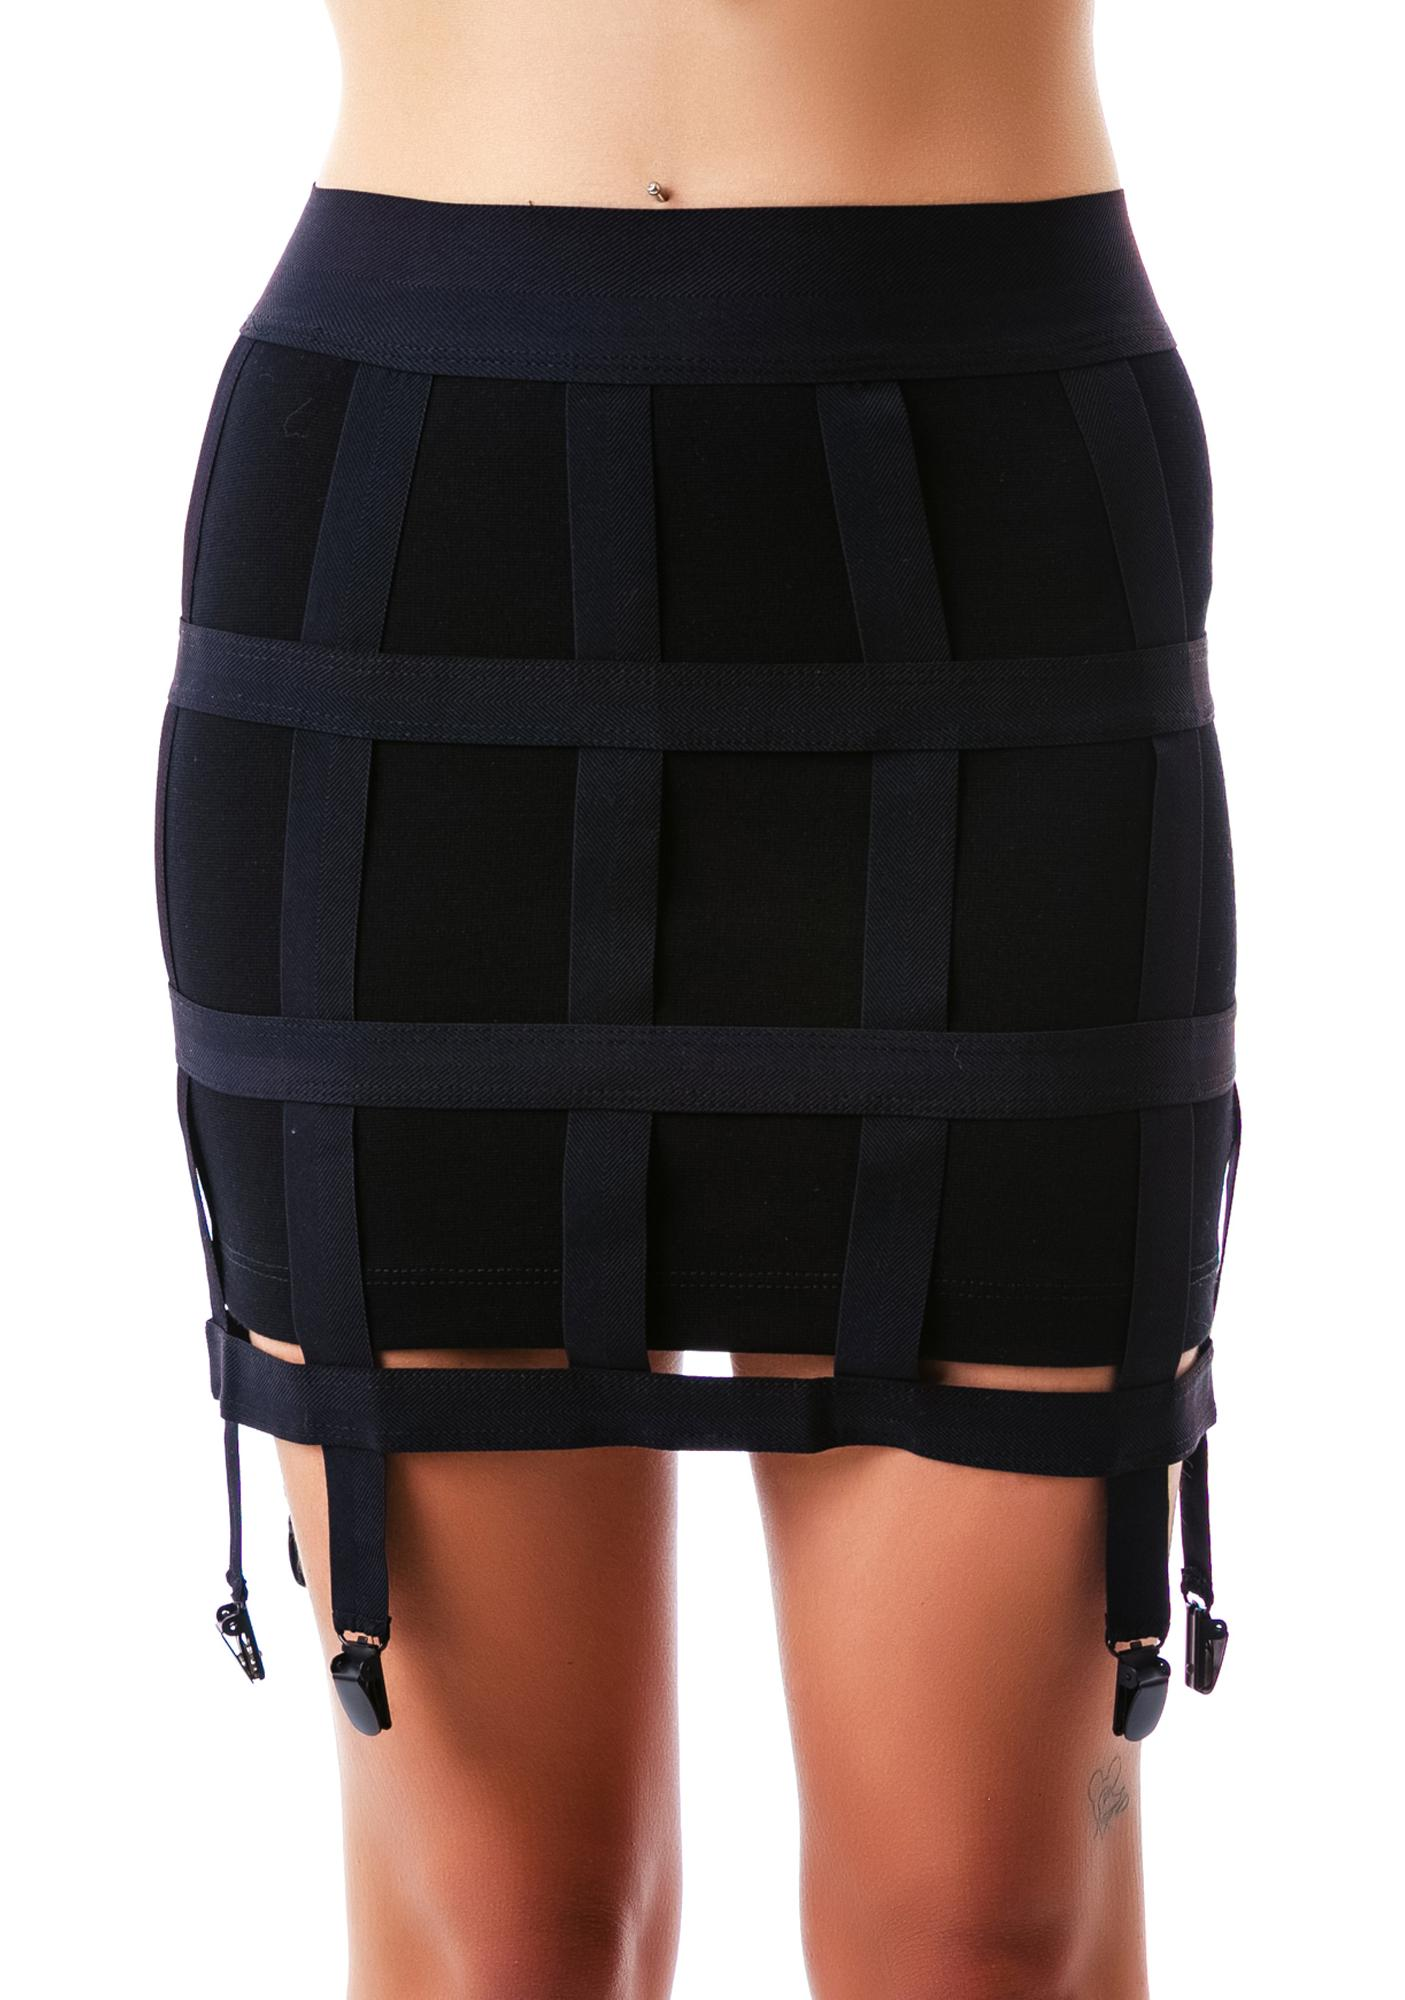 Lip Service Off the Grid Cage Garter Skirt